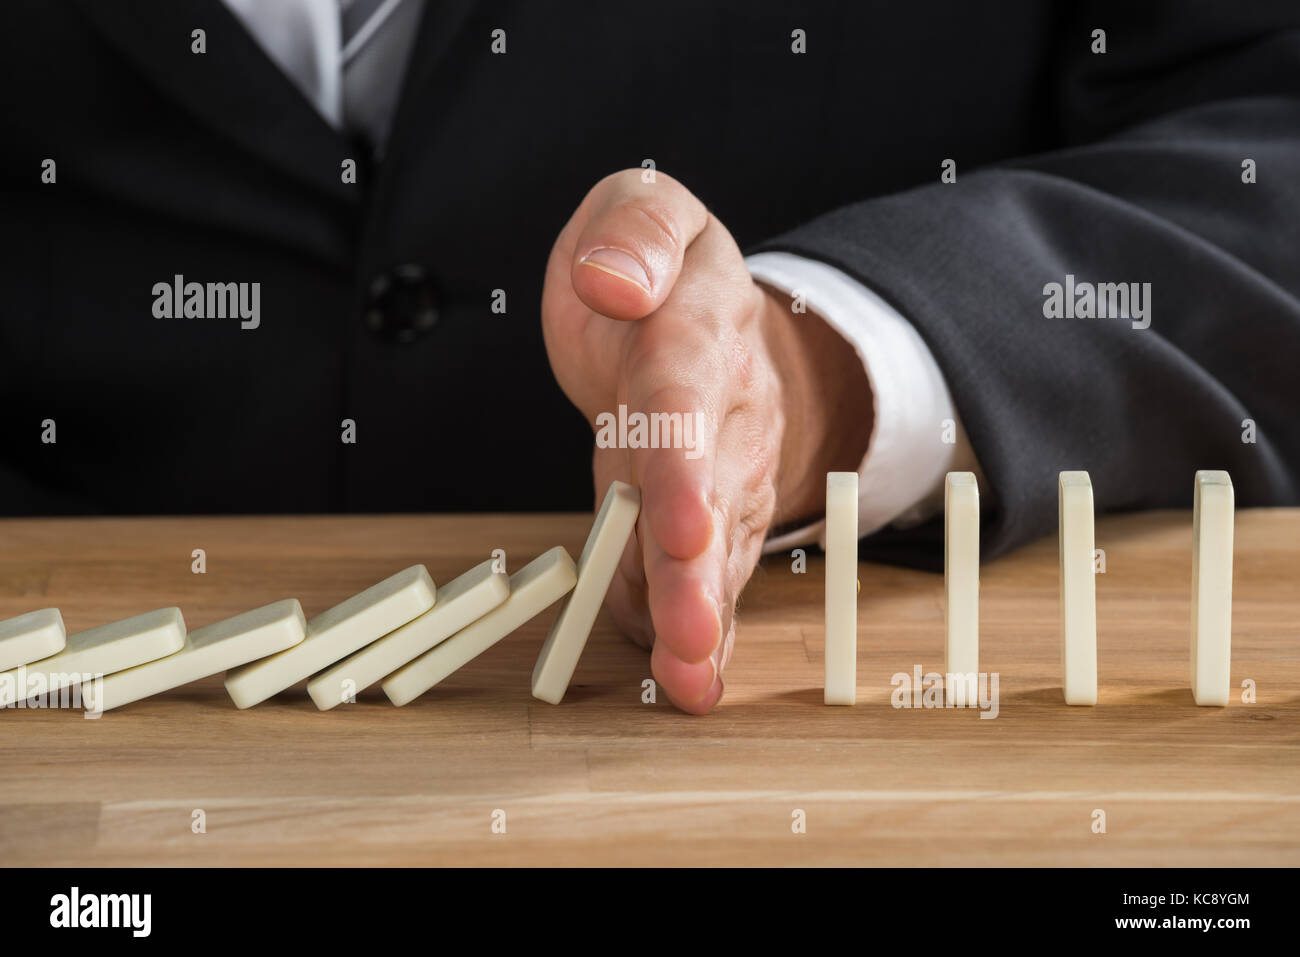 Close-up Of Young Businessperson Stopping Dominos From Falling On Wooden Desk - Stock Image